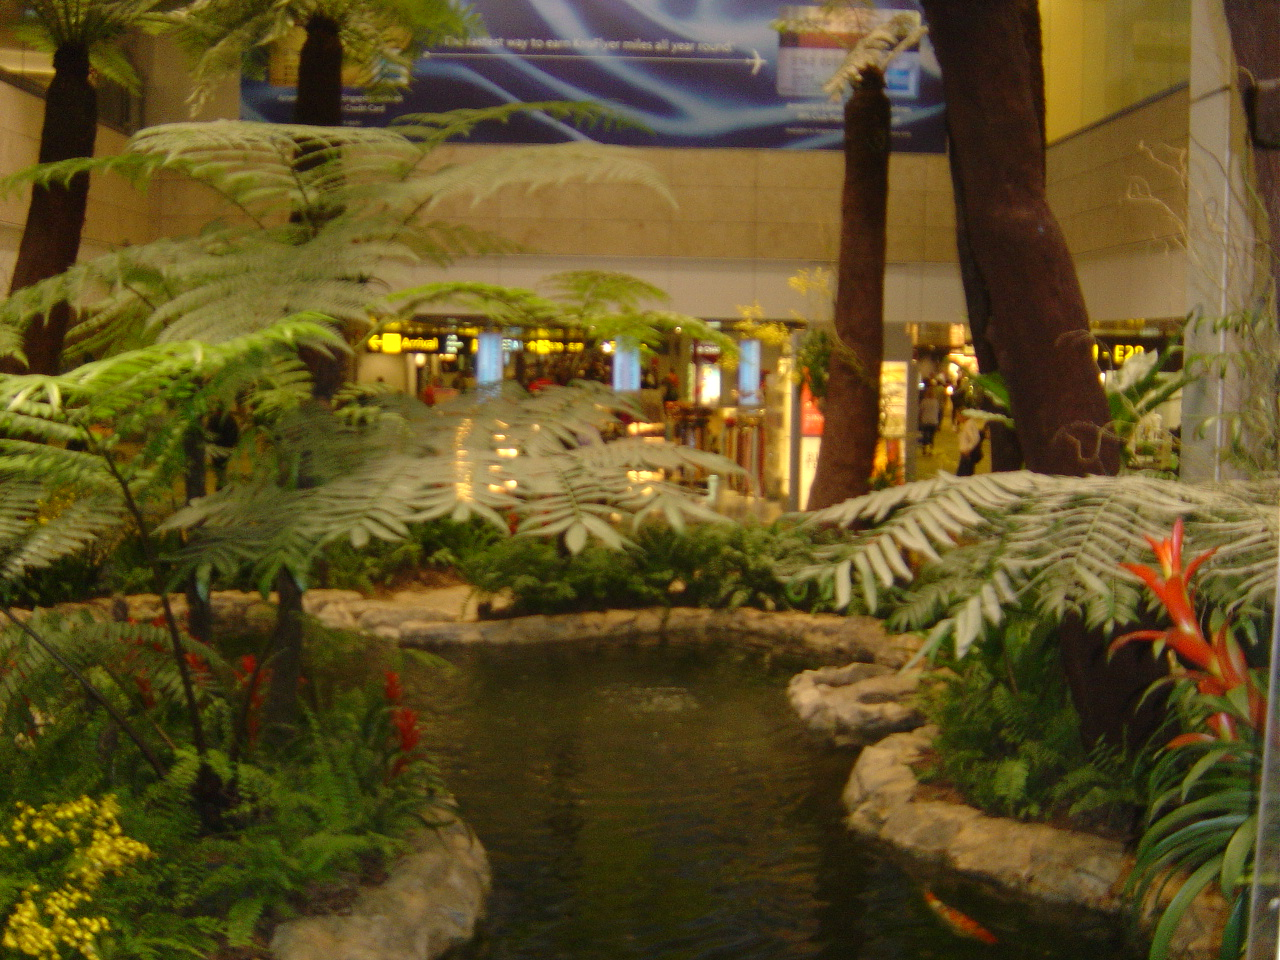 singapore images singapore airport hd wallpaper and background photos  536812